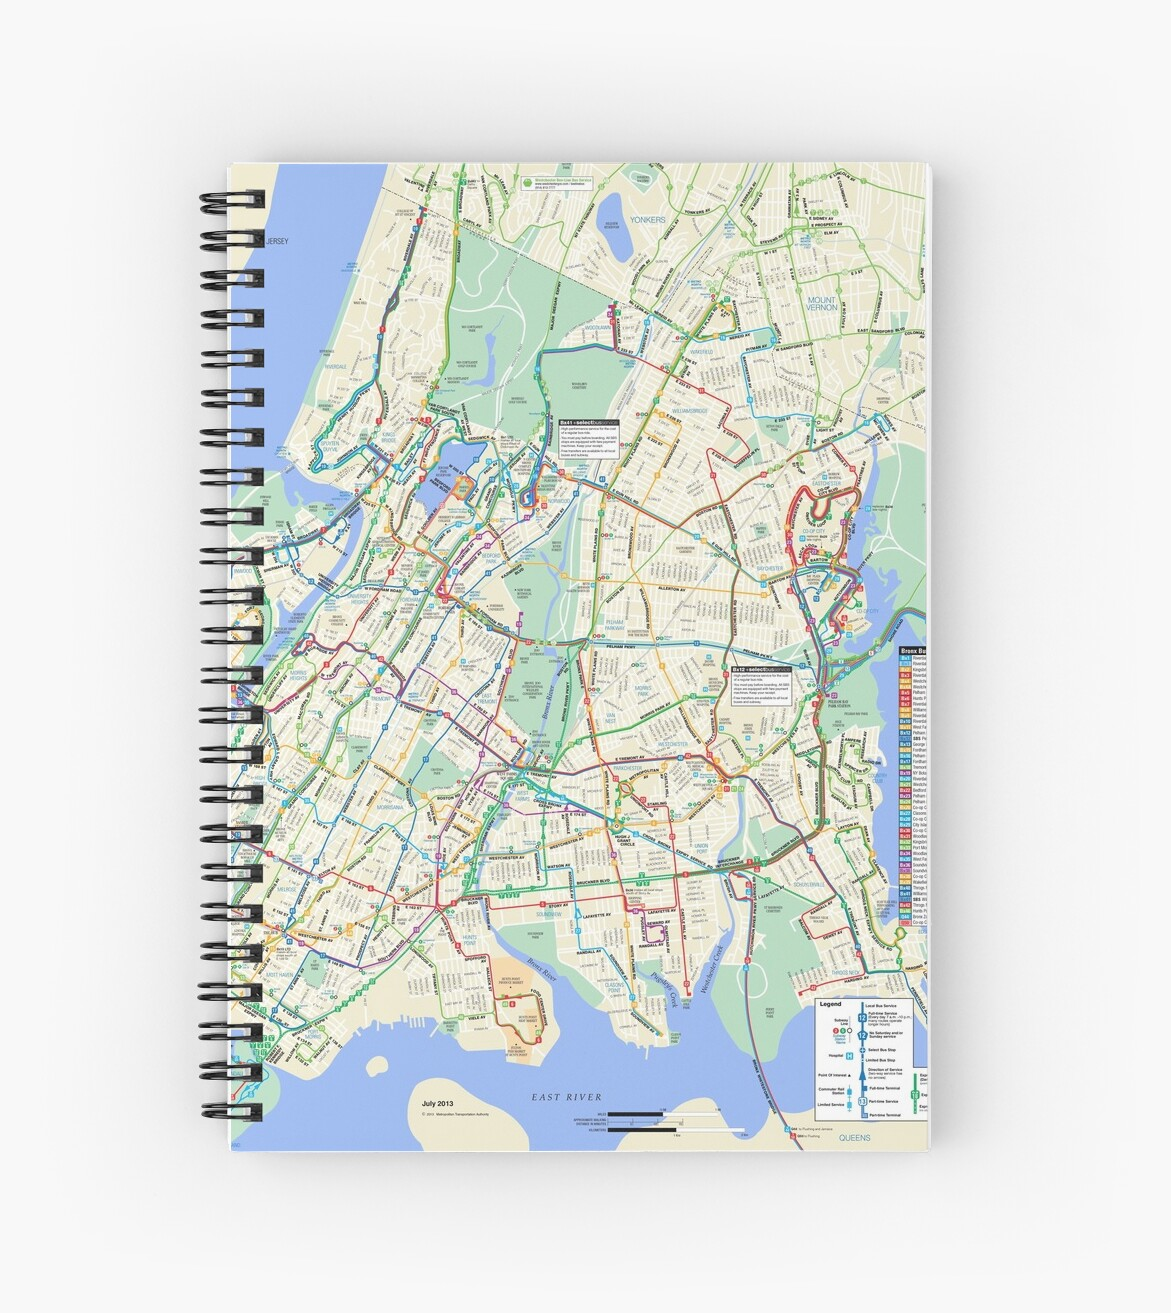 'The Bronx Bus Map - New York City - United States' Spiral Notebook on yonkers city maps, north yonkers n y map, bakersfield ca bus map, nyc bus map, new york street map, jacksonville fl bus map, yonkers bus routes, burke ave subway map, yonkers new york zip code map, vancouver wa bus map, madison wi bus map, bronx city map, belmont ny map, pelham parkway bronx street map, westchester county ny zip code map, yonkers street map, baker avenue bronx ny street map, rochester ny map, washington dc bus map, austin tx bus map,